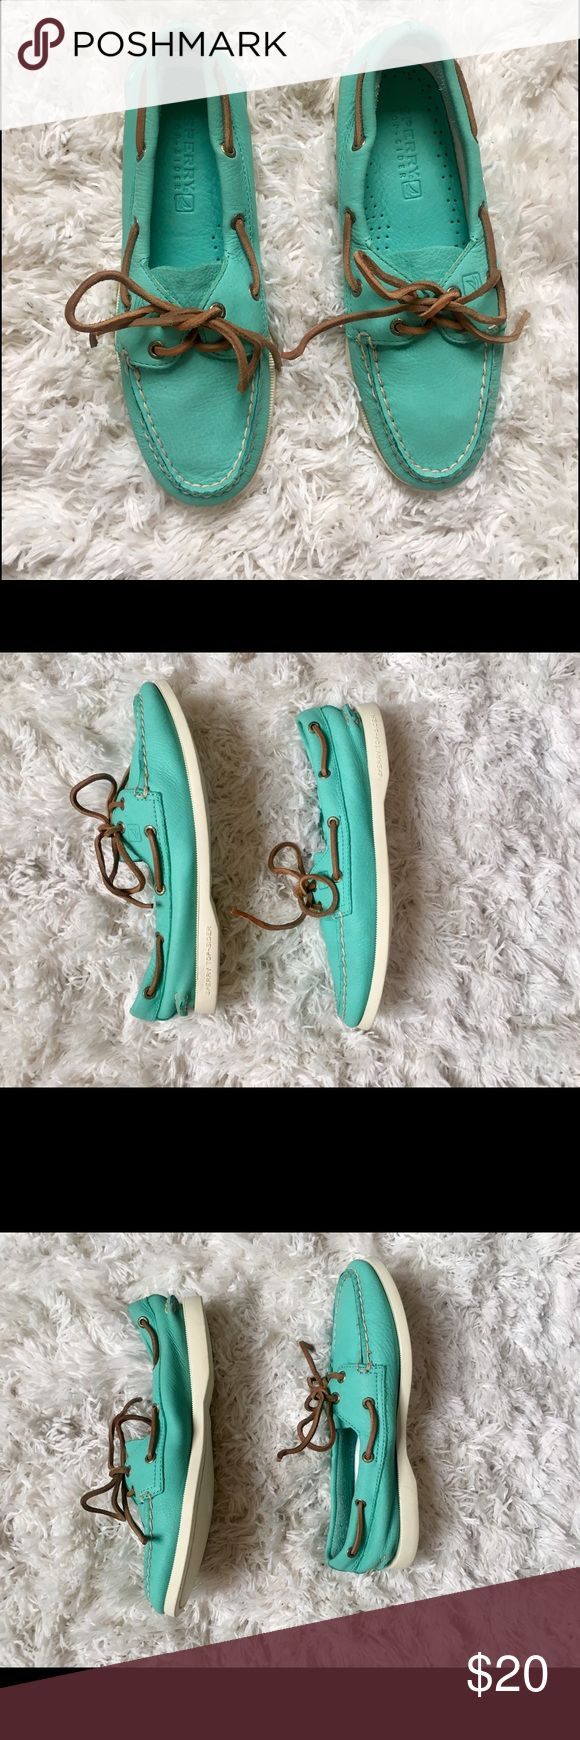 Sperry Authentic Original Boat Shoe, Size 6 ✖️ Sperry Top-Sider Authentic Original Boat Shoe                                                                                                            ✖️ Size 6                                                                                 ✖️ Turquoise Leather                                                                                                                                                       ✖️ Never worn. No tags purchased at…